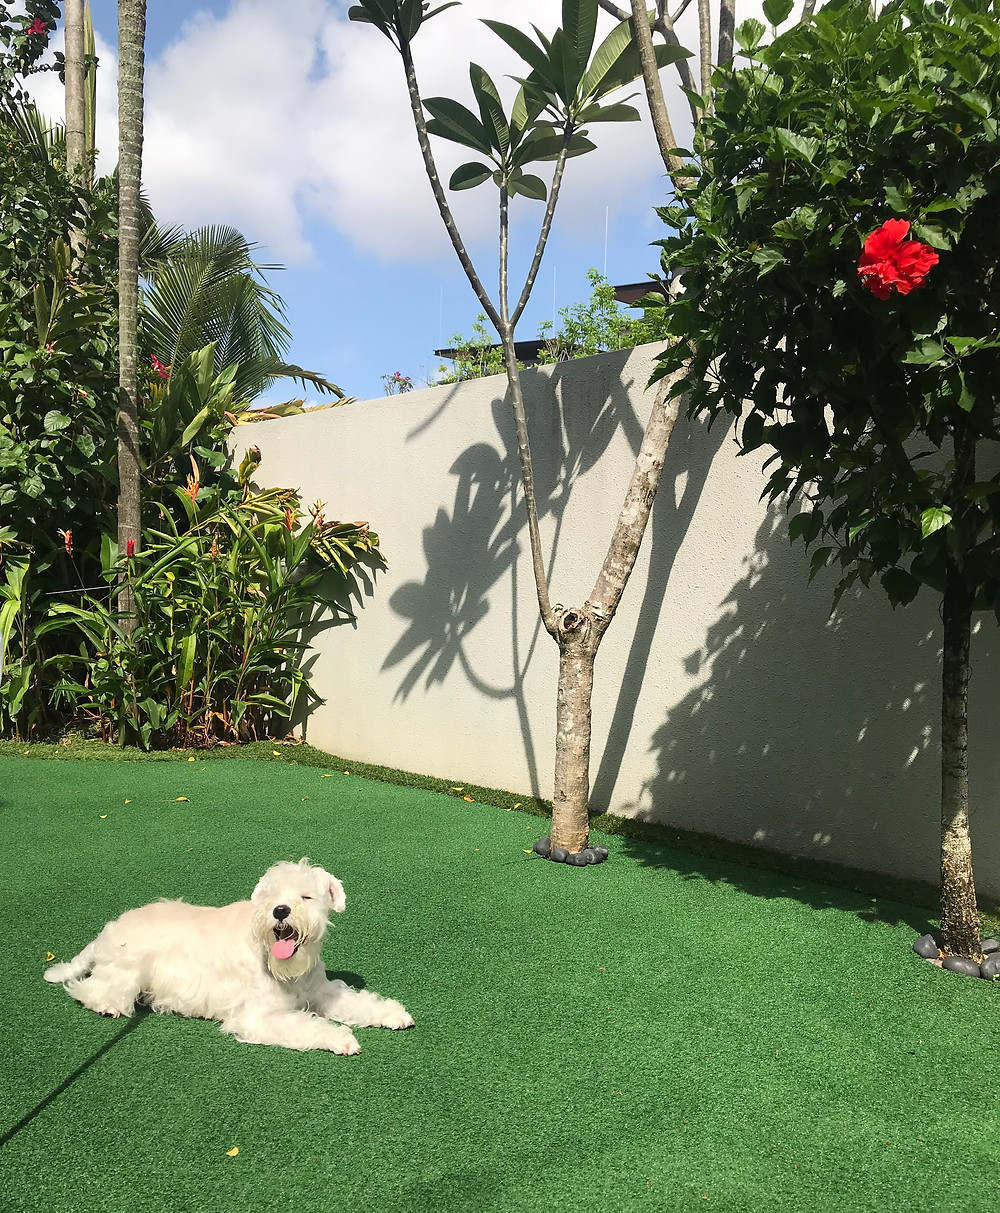 a pet dog relaxing in the garden of a landed property